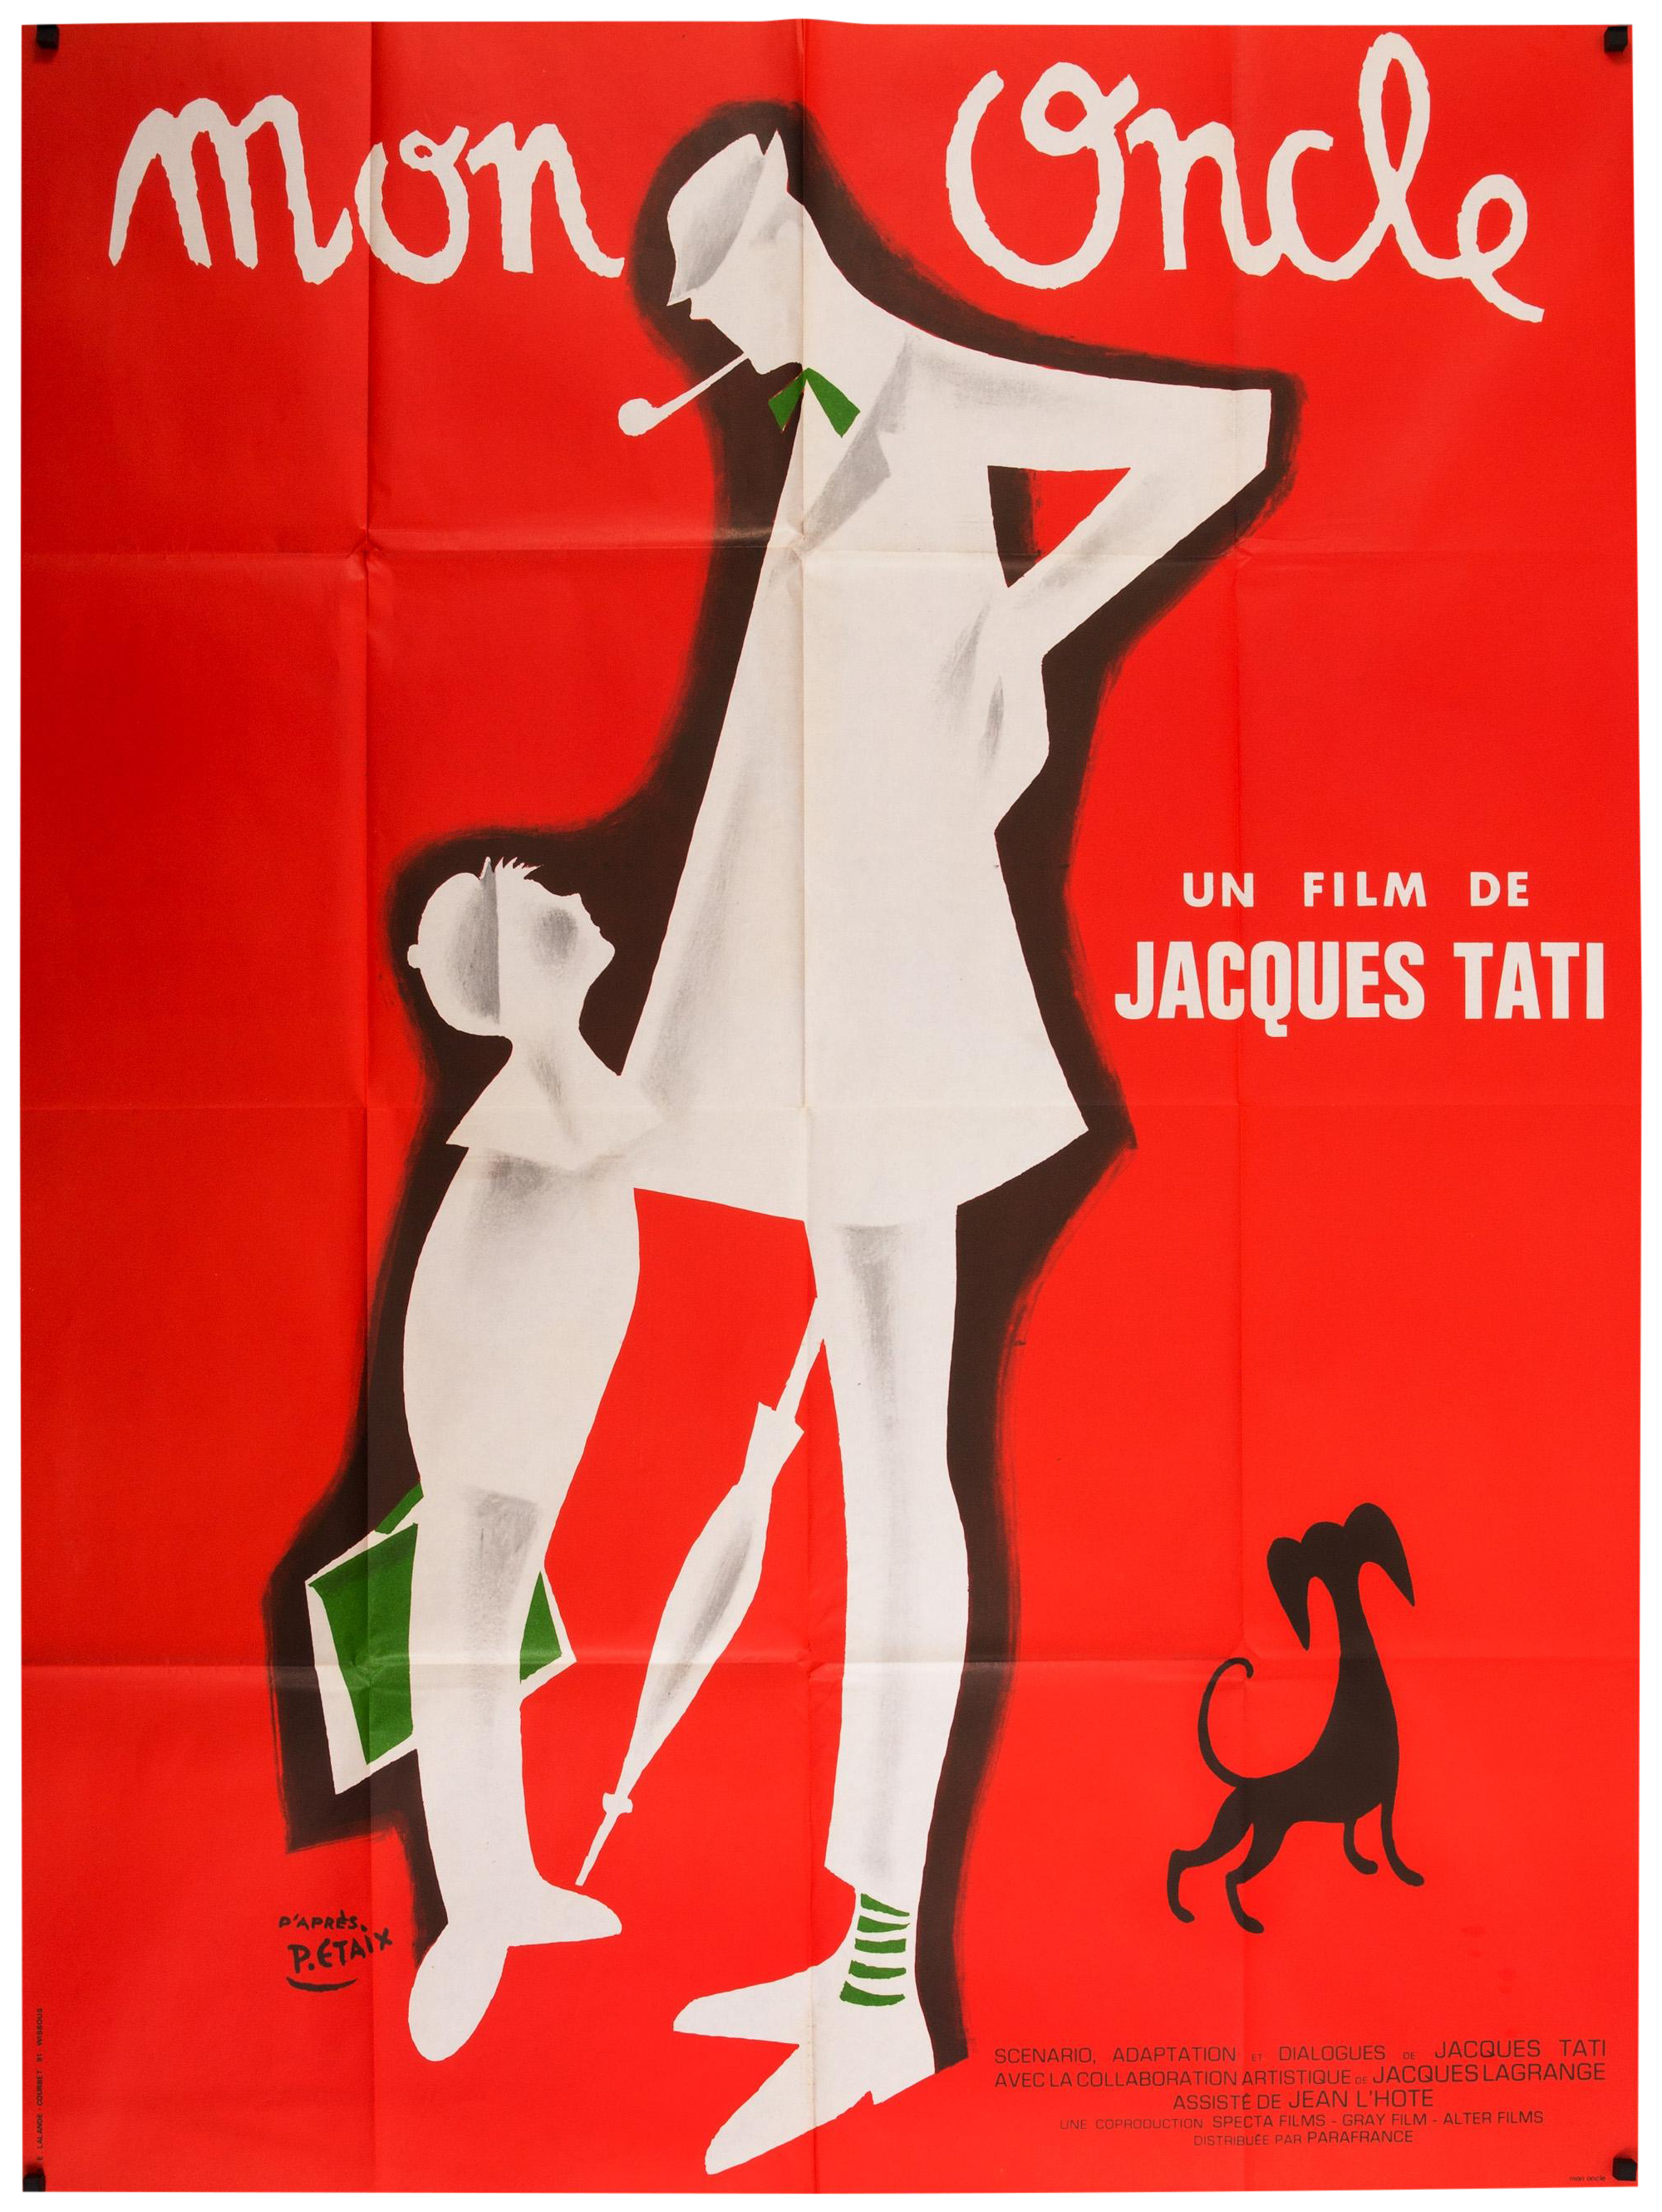 Jacques tati 39 mon oncle 39 french film poster chairish - Jacques tati mon oncle ...